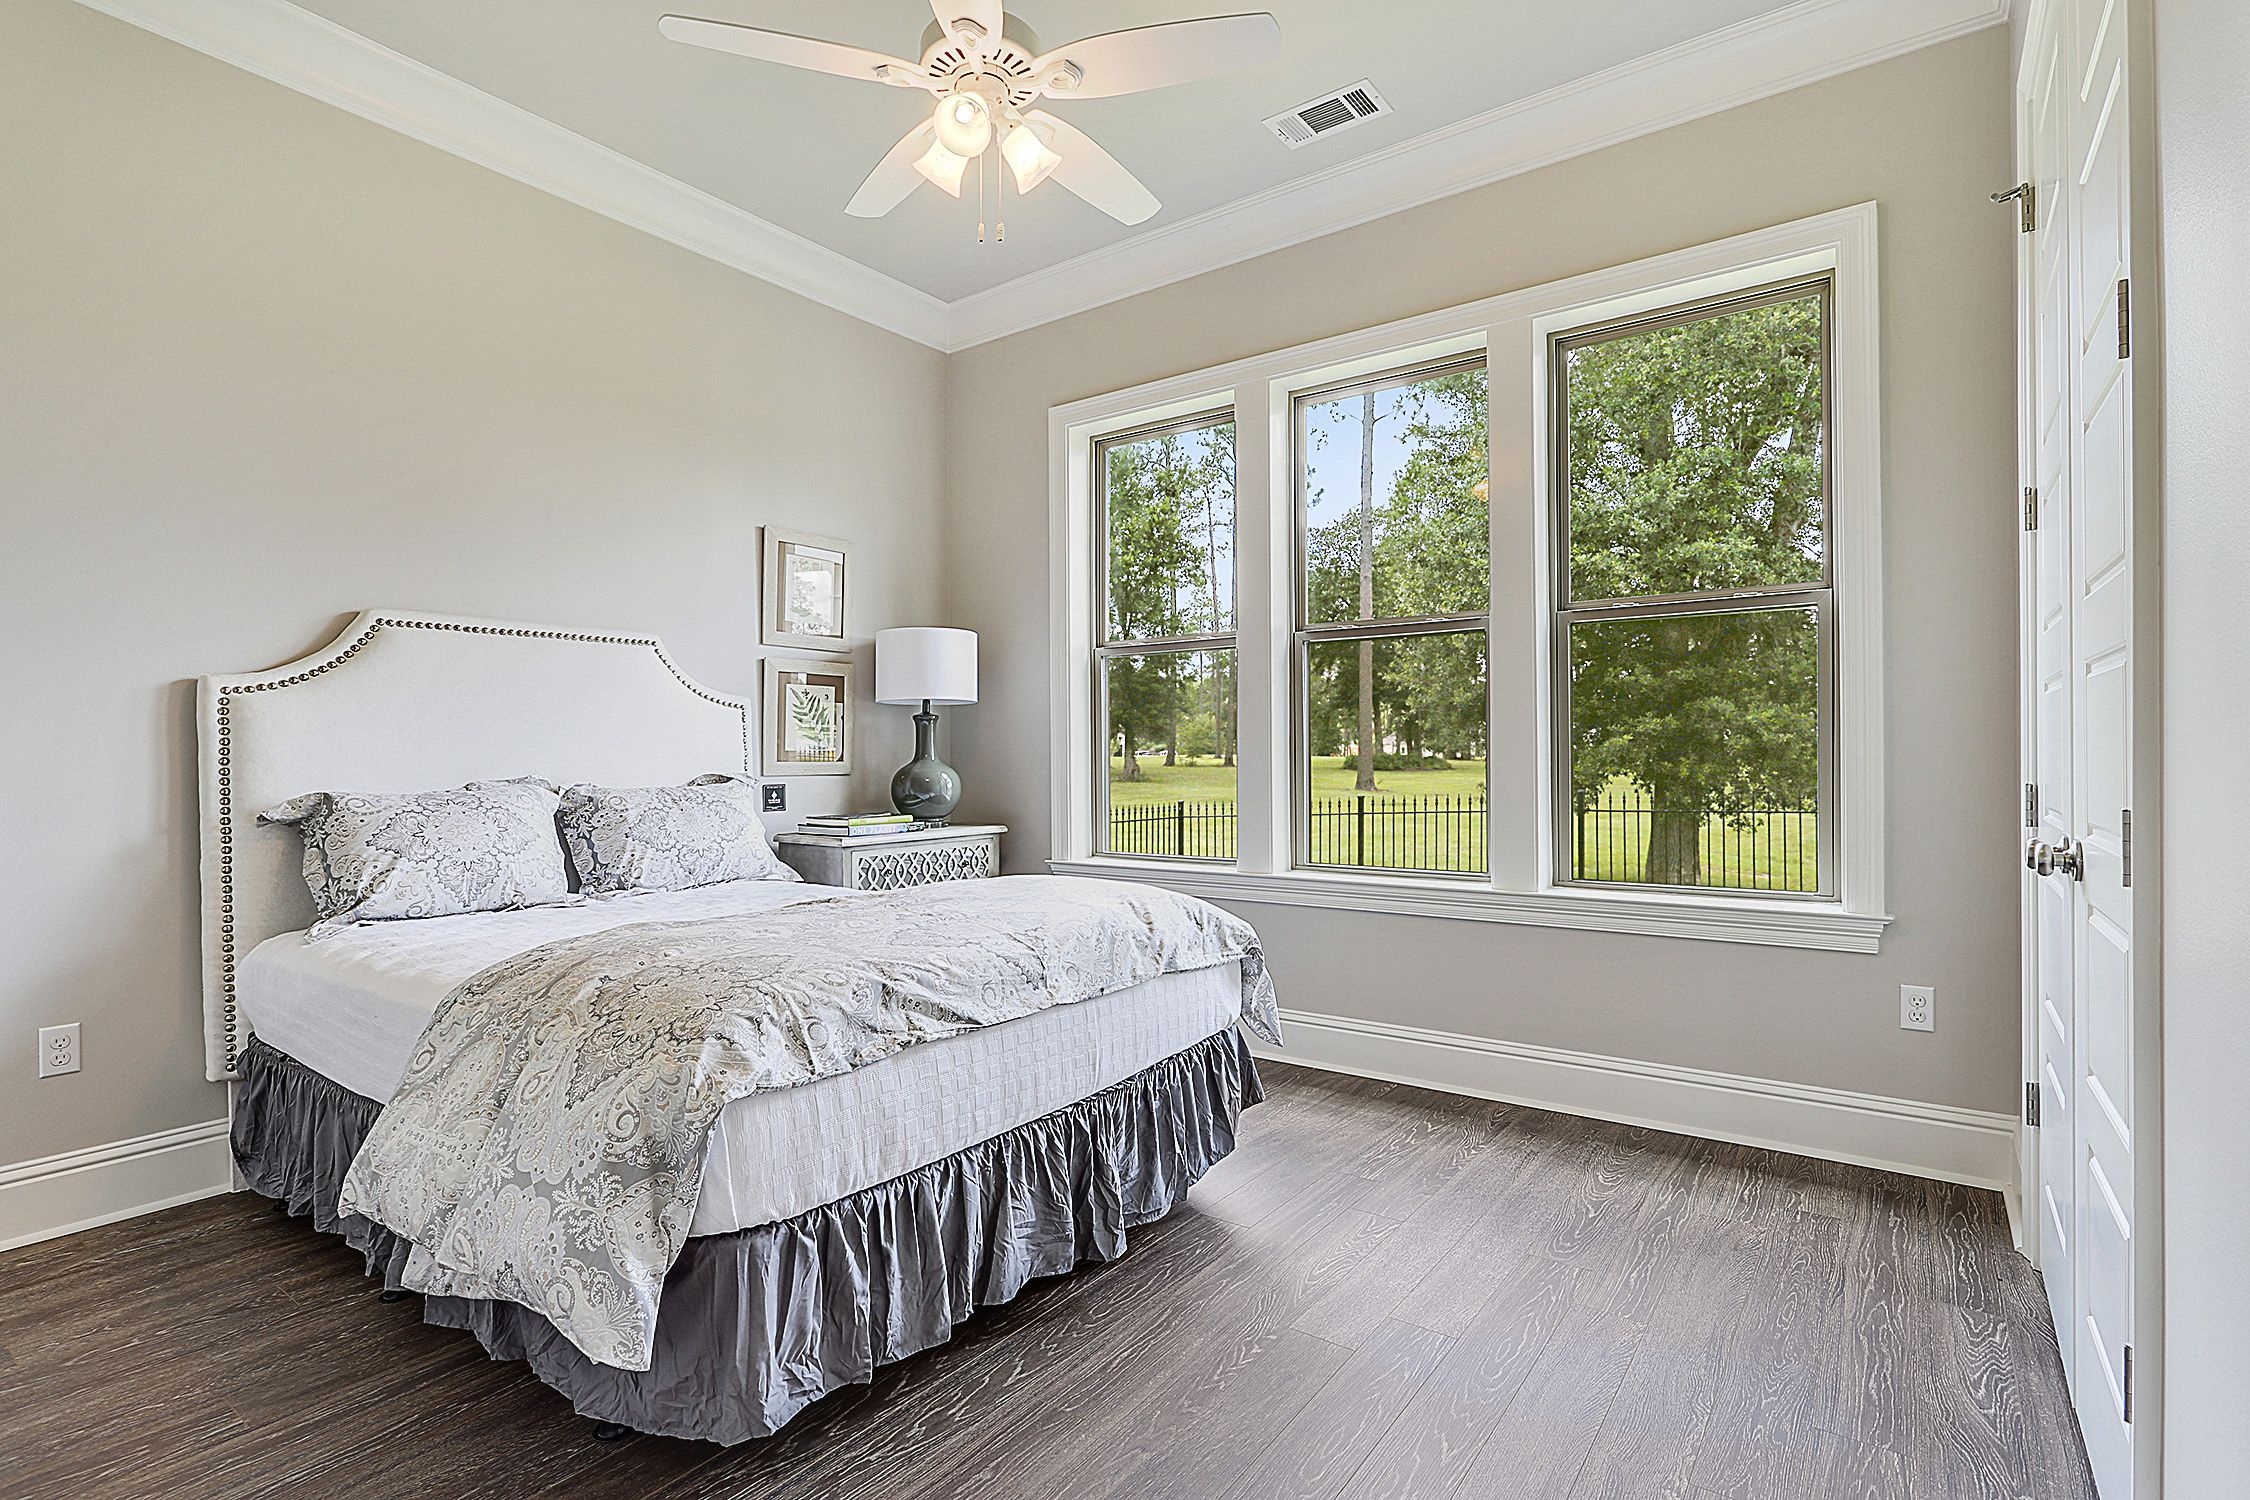 Bedroom featured in the Turnberry By Highland Homes in New Orleans, LA